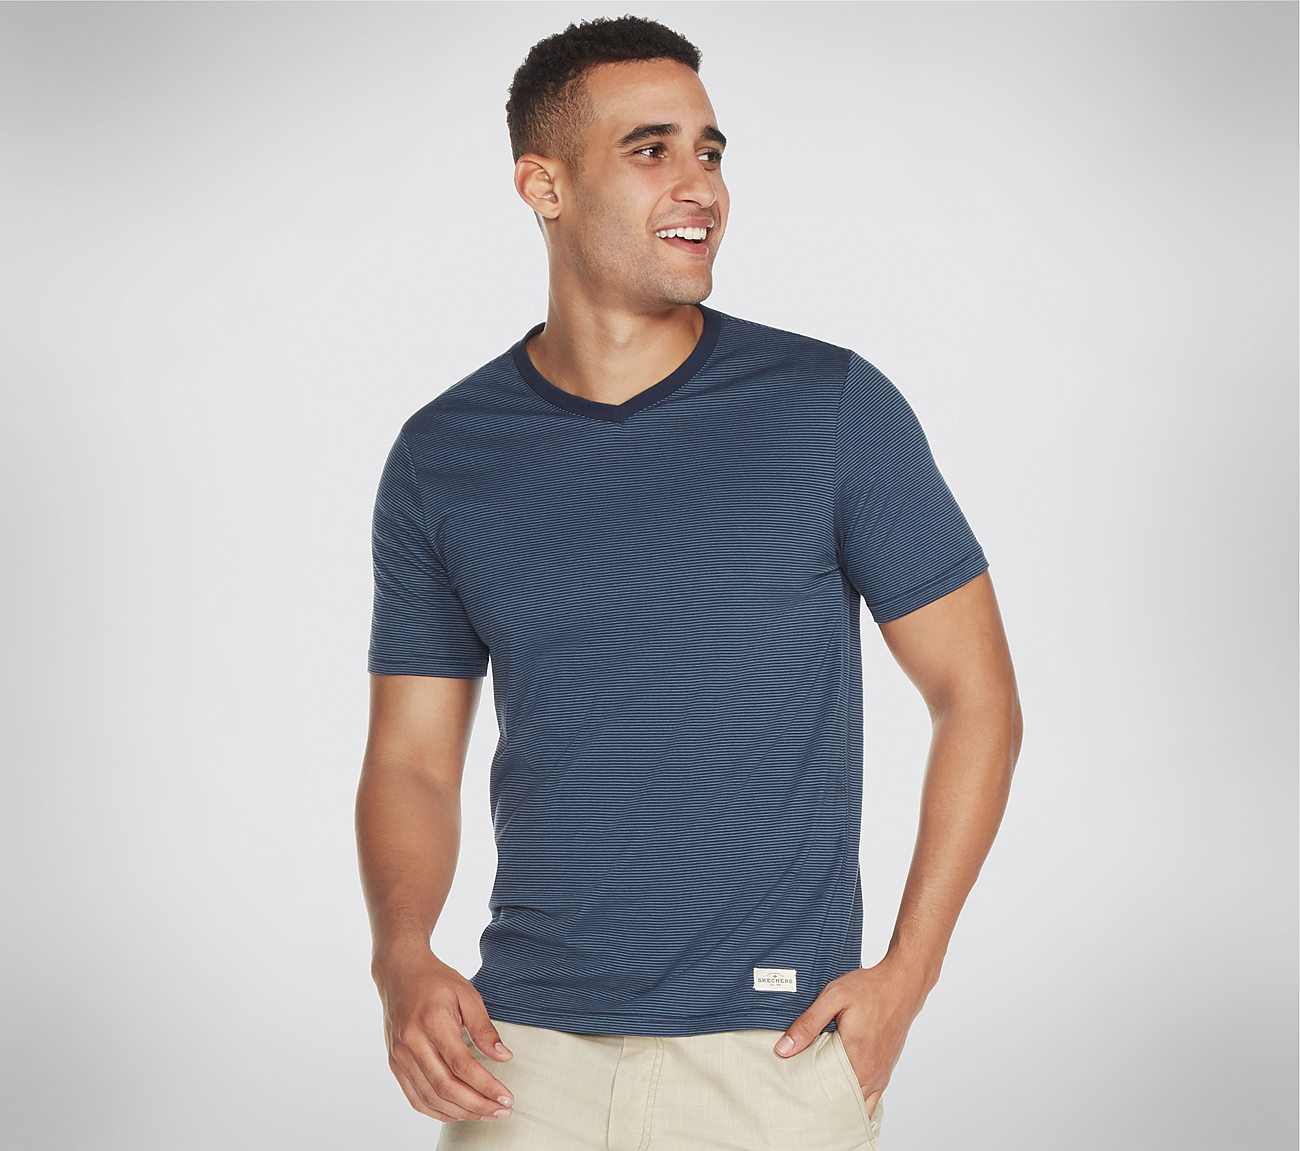 Skechers Apparel Foreshore Tee Shirt